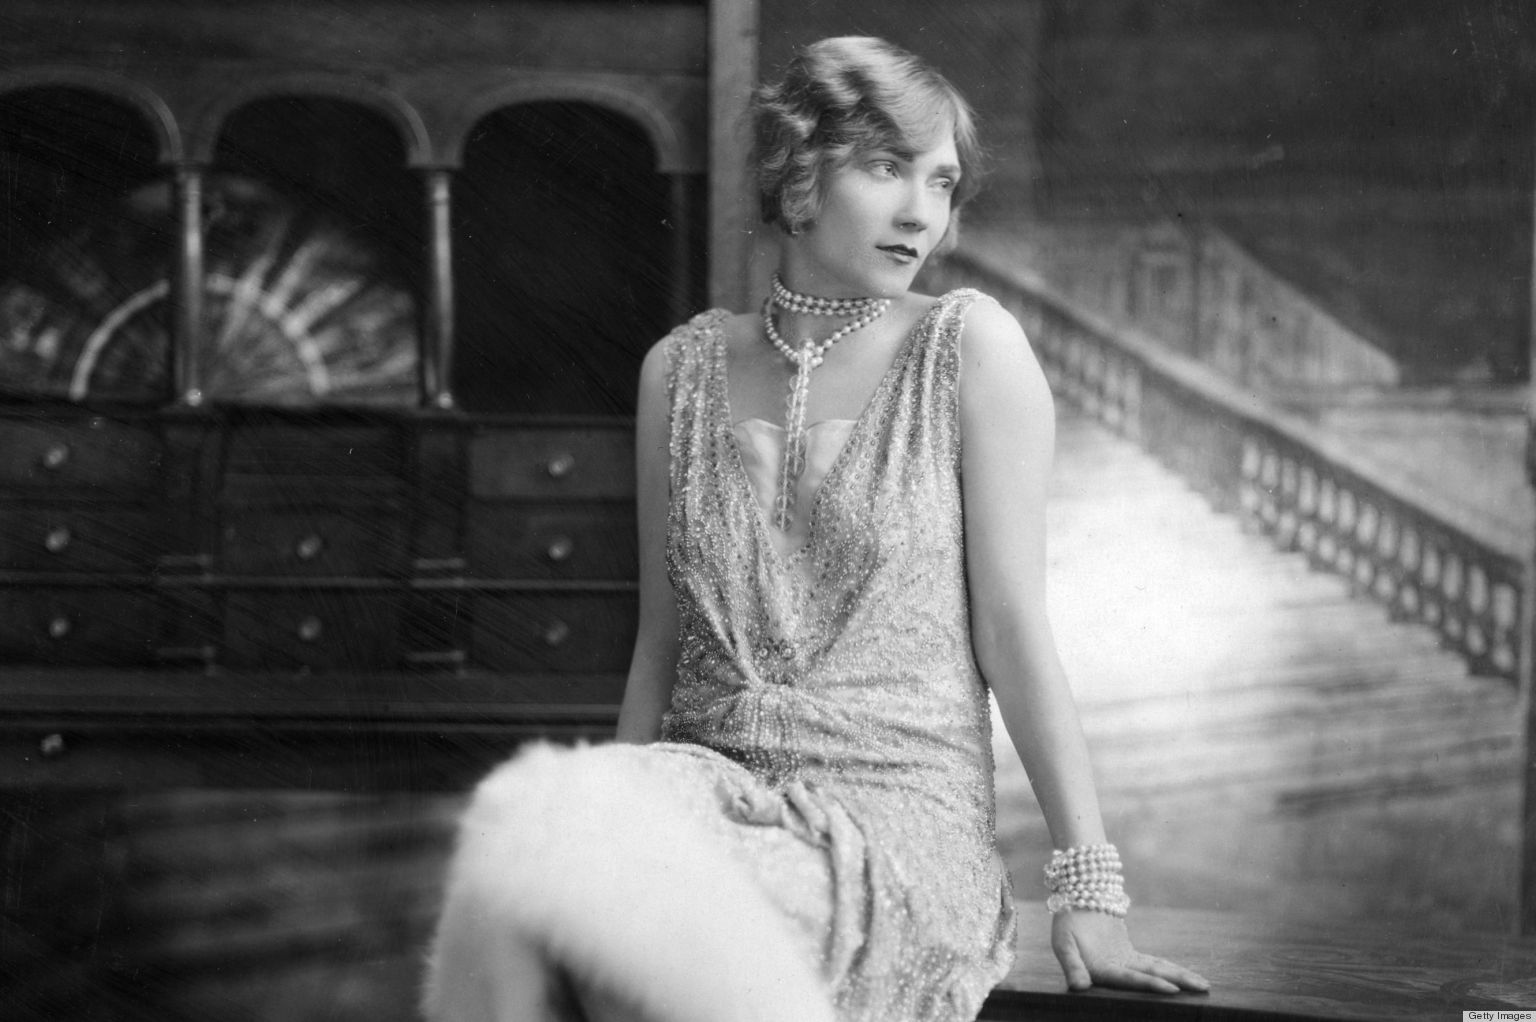 1920s Fashion: How To Add A Little Flapper Style To Your